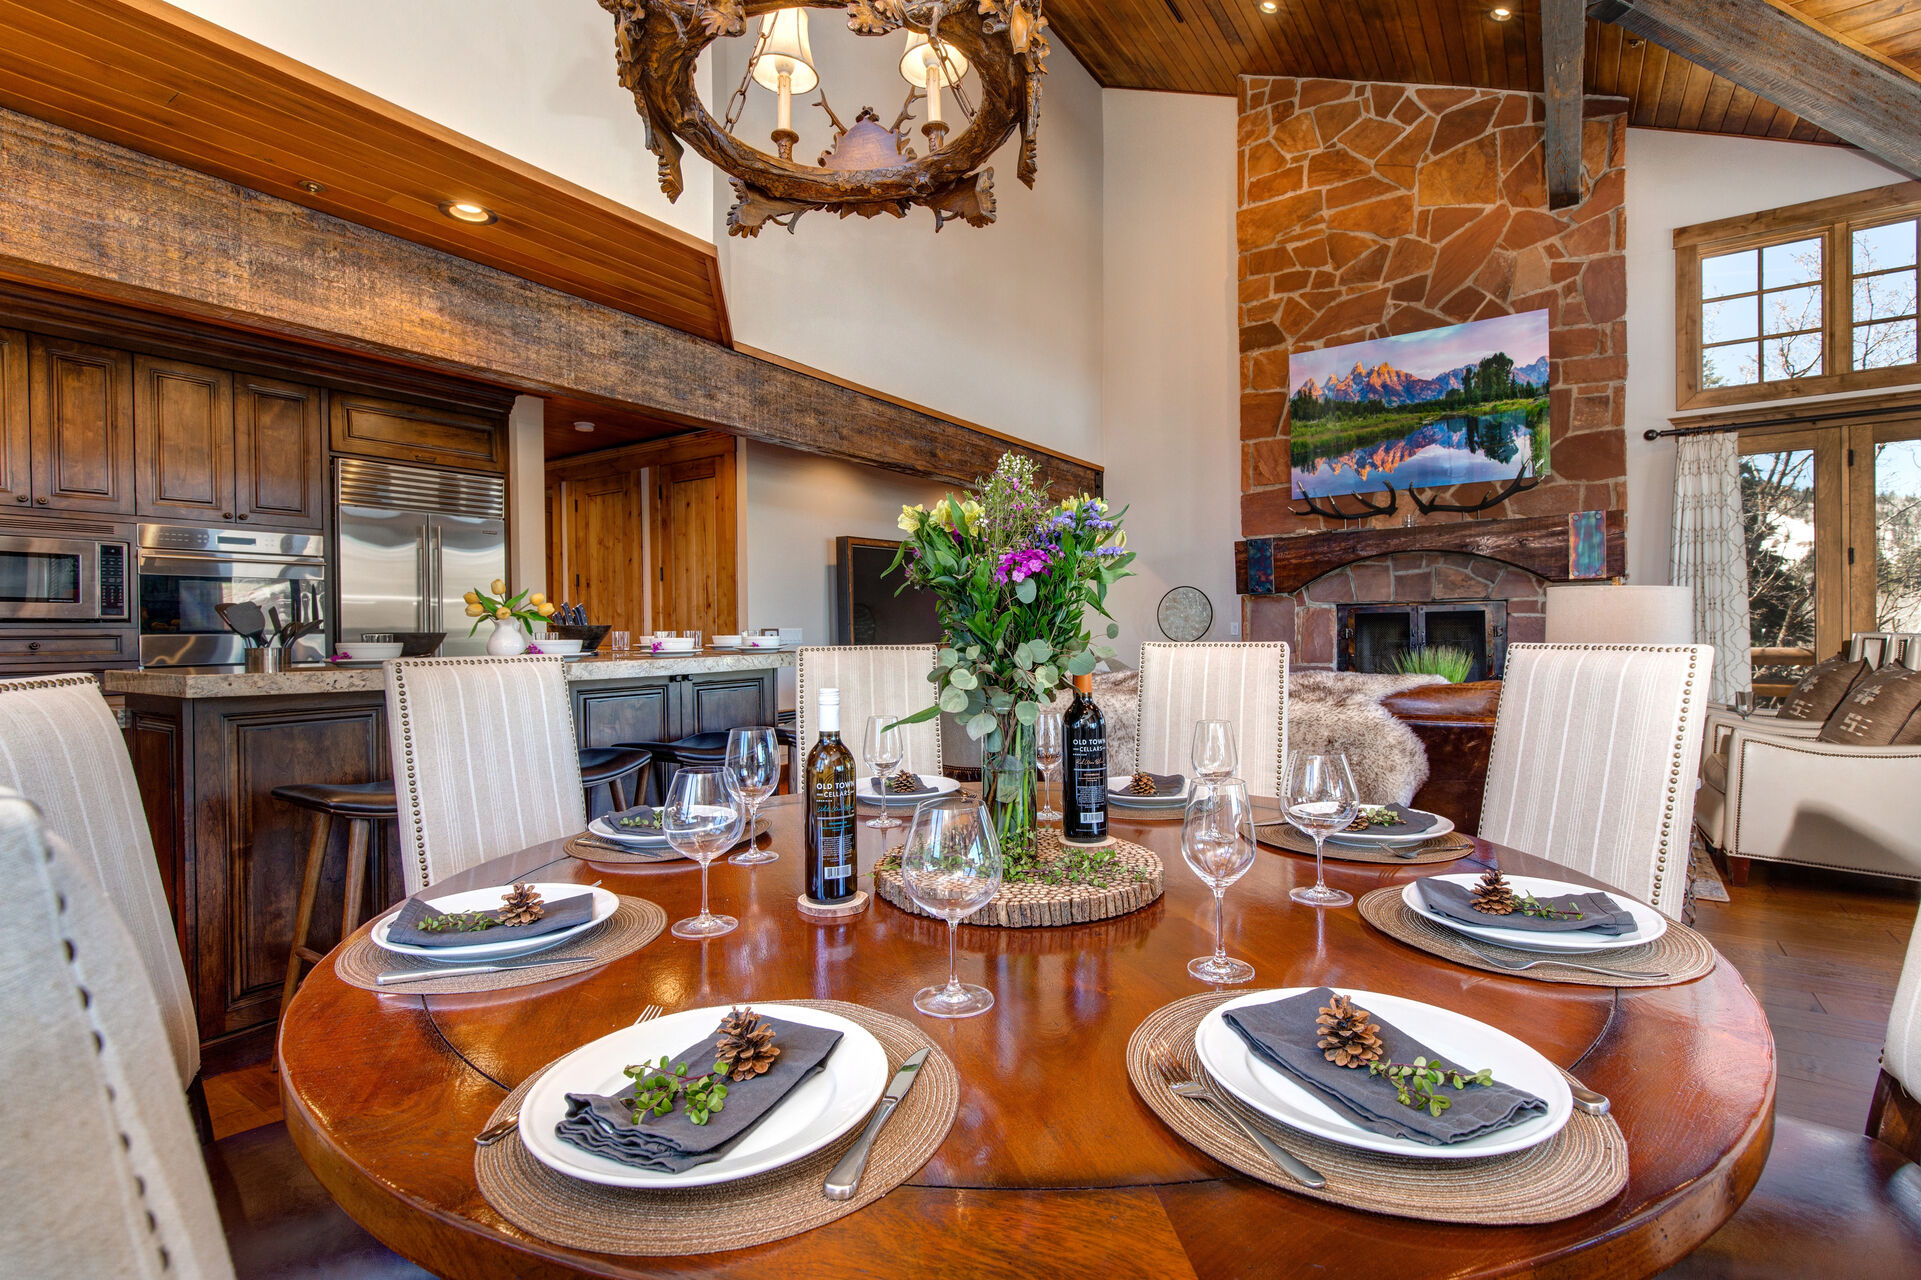 Round Table Dining for up to Ten Diners